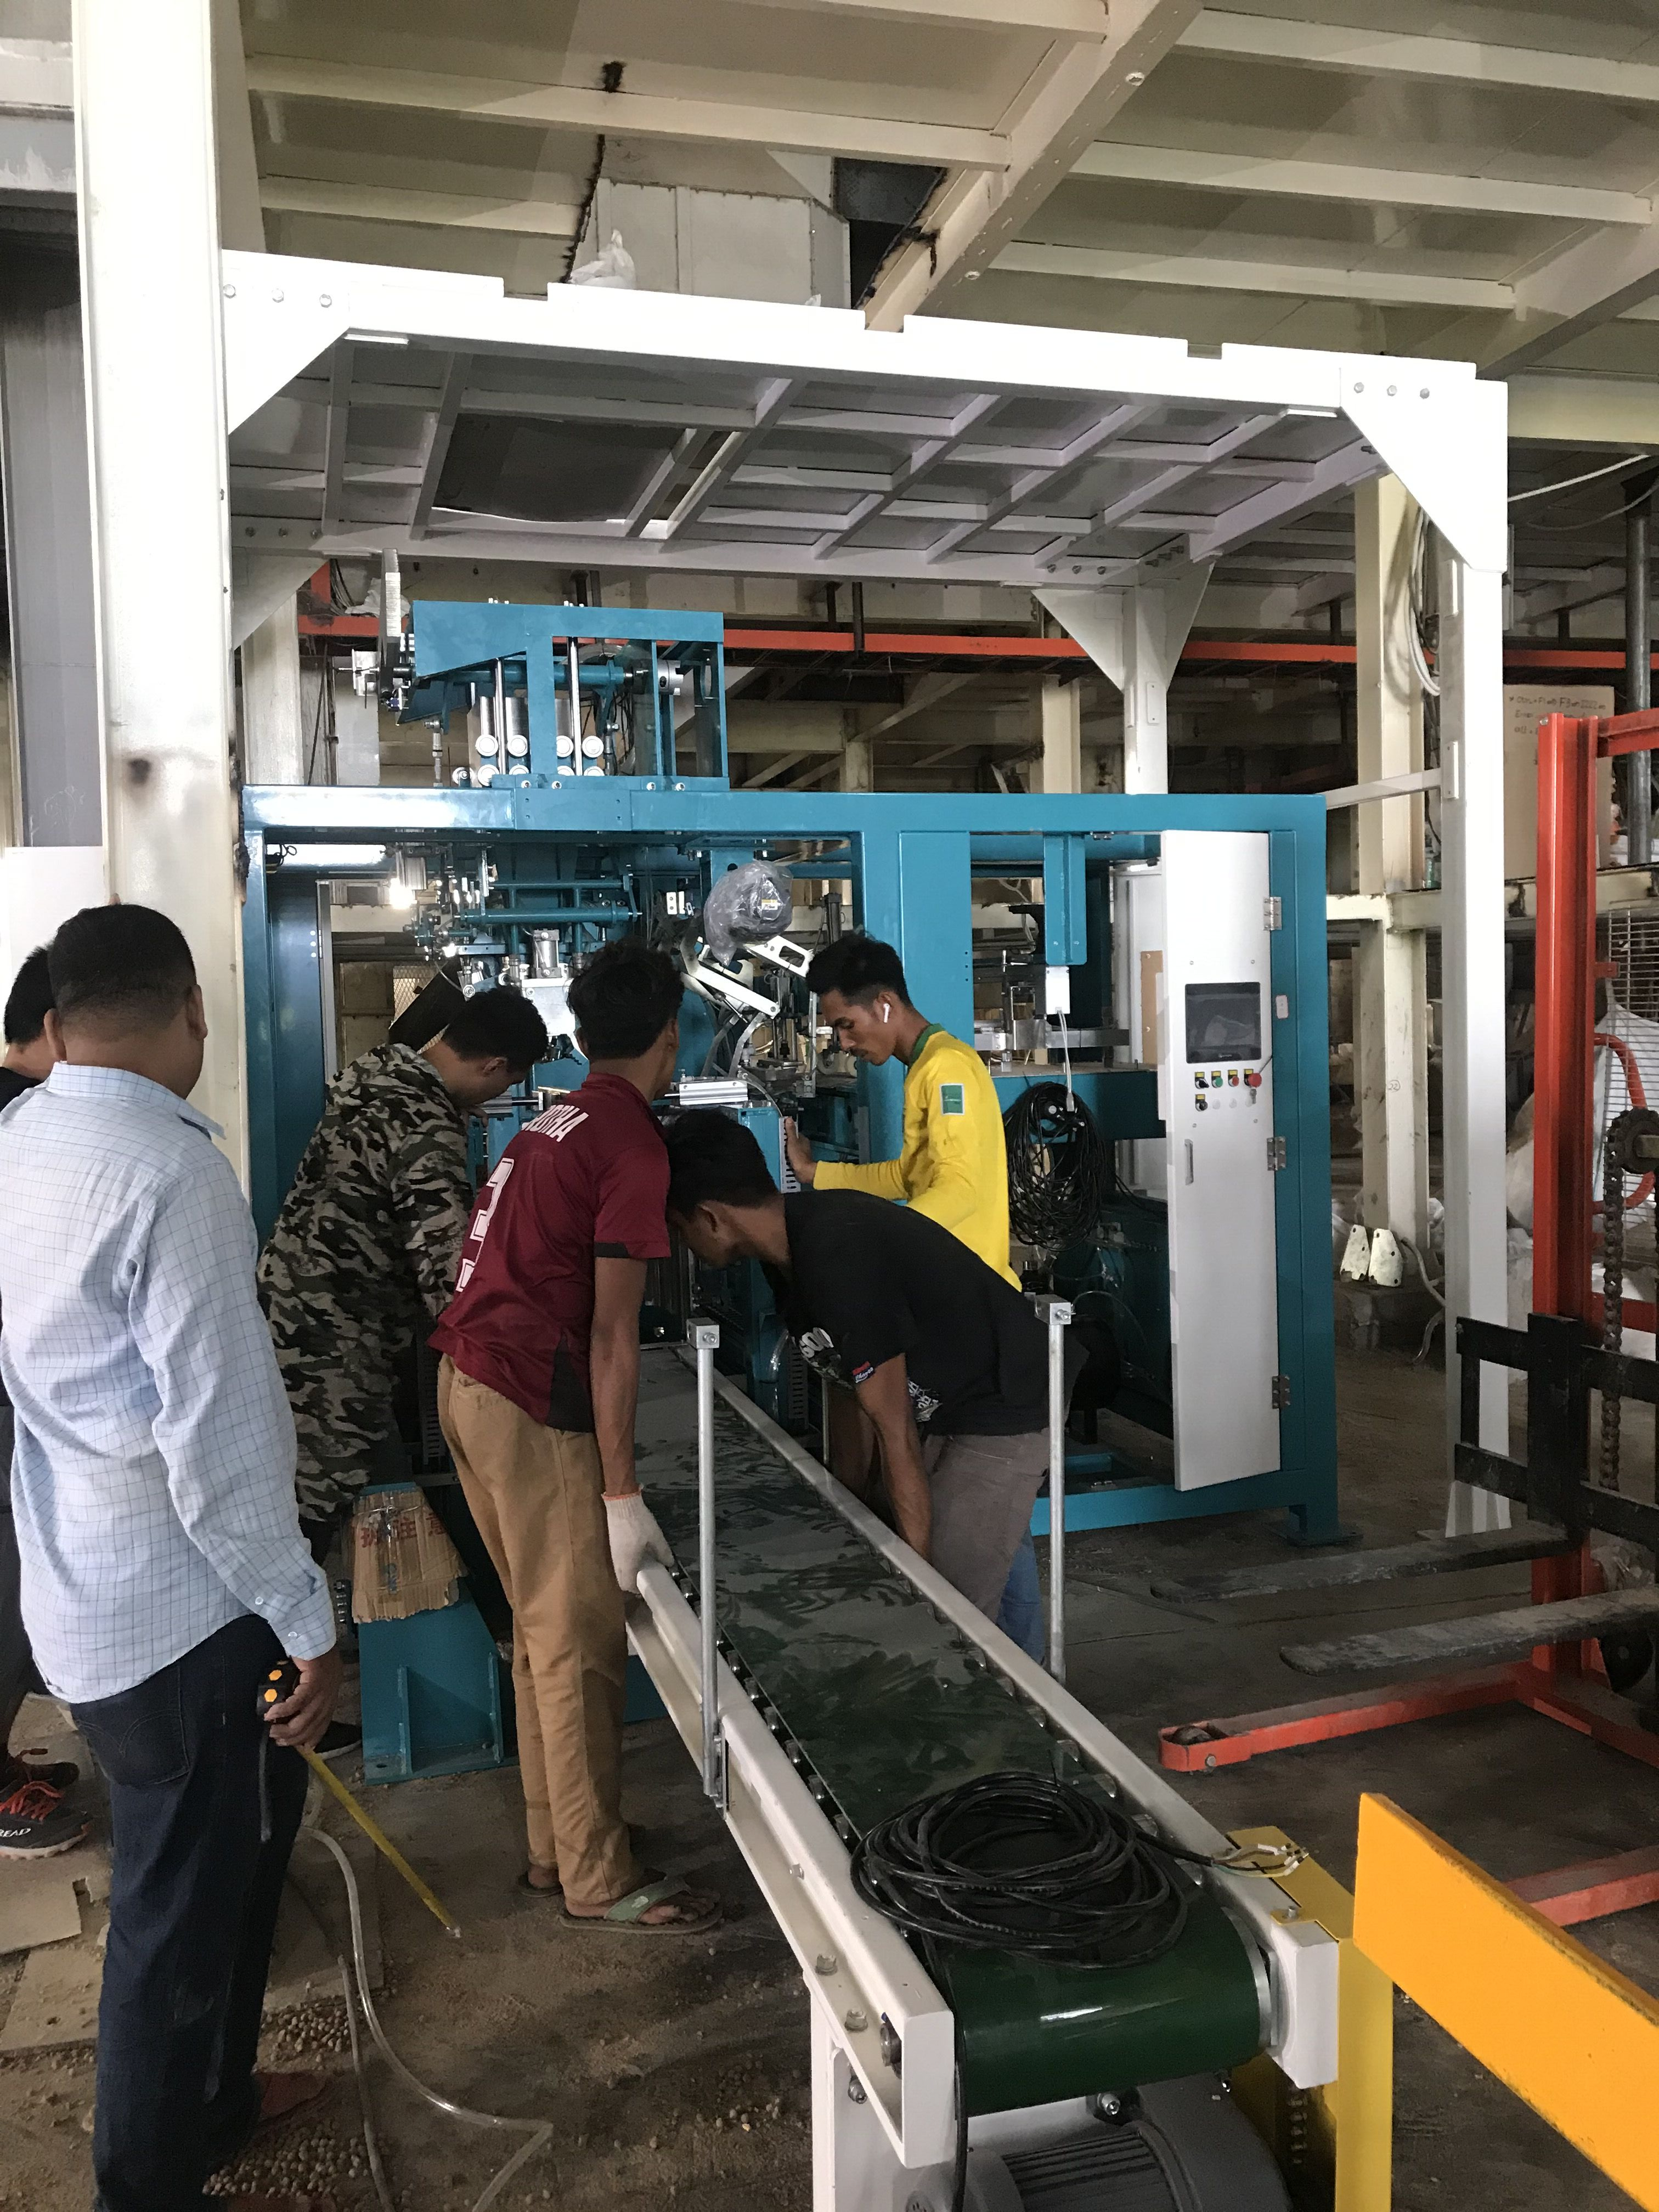 25-50KG bag Automatic bagging machine for NPK and Urea fertilizers full automatic packaging line full automatic fertilizers bagging palletizing and wrapping system